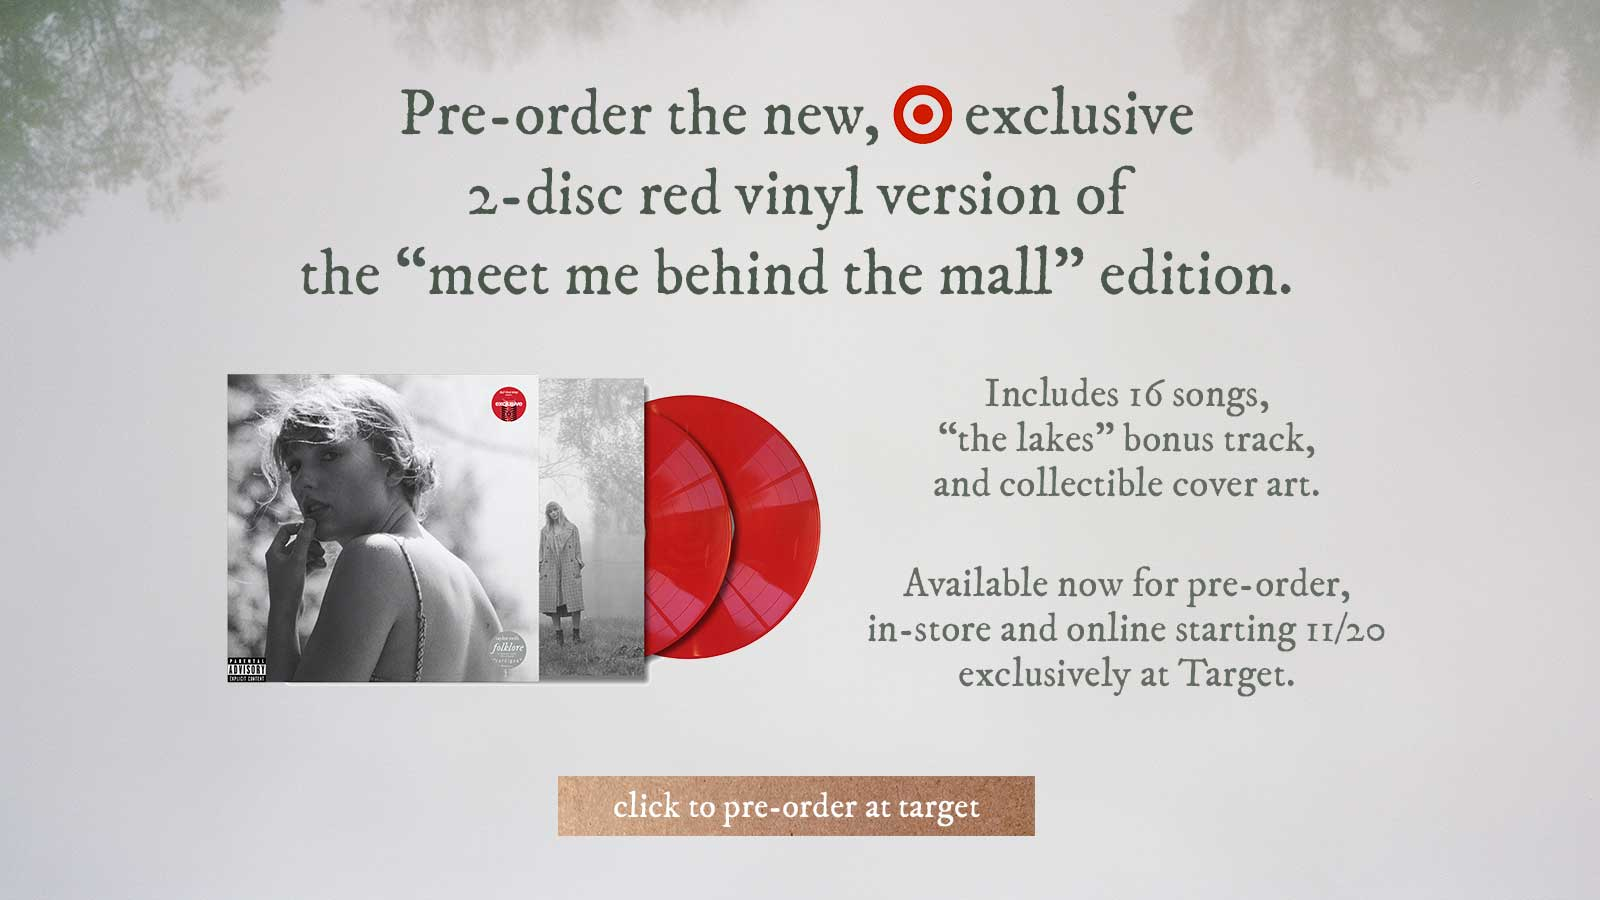 Pre-order the new Target exclusive 2-disc red vinyl version of 'meet me behind the mall' edition. Includes 16 songs 'the lakes' bonus track, and collectible cover art. Available now for pre-order, in-store and online starting 11/20 exclusively at Target. Click to pre-order at Target